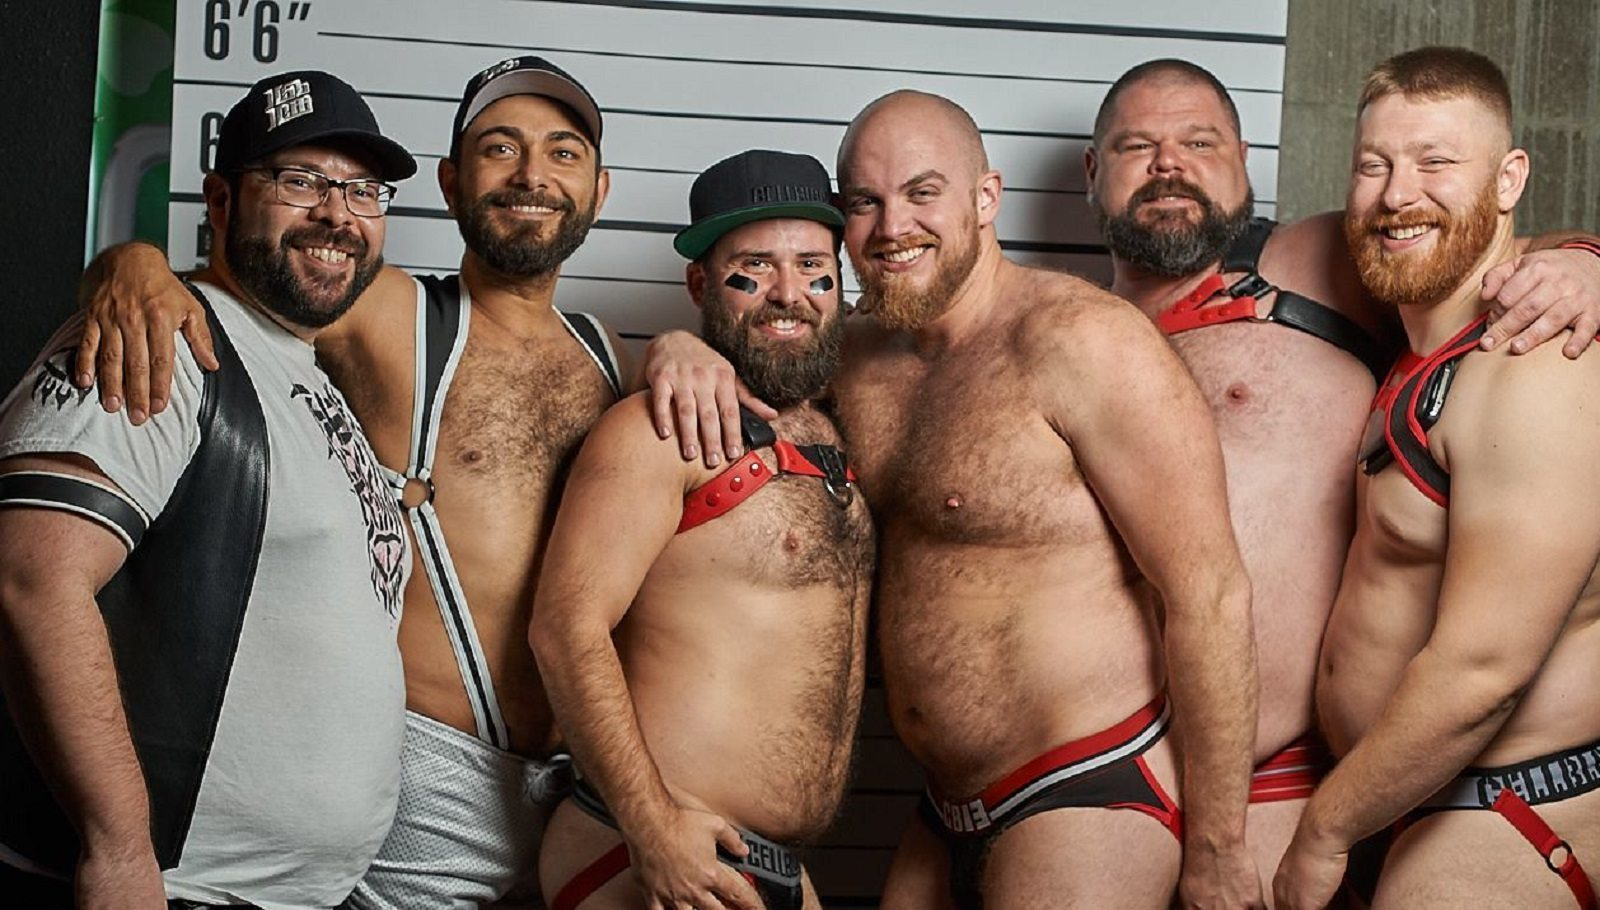 San francisco gives cultural status to leather, gay district